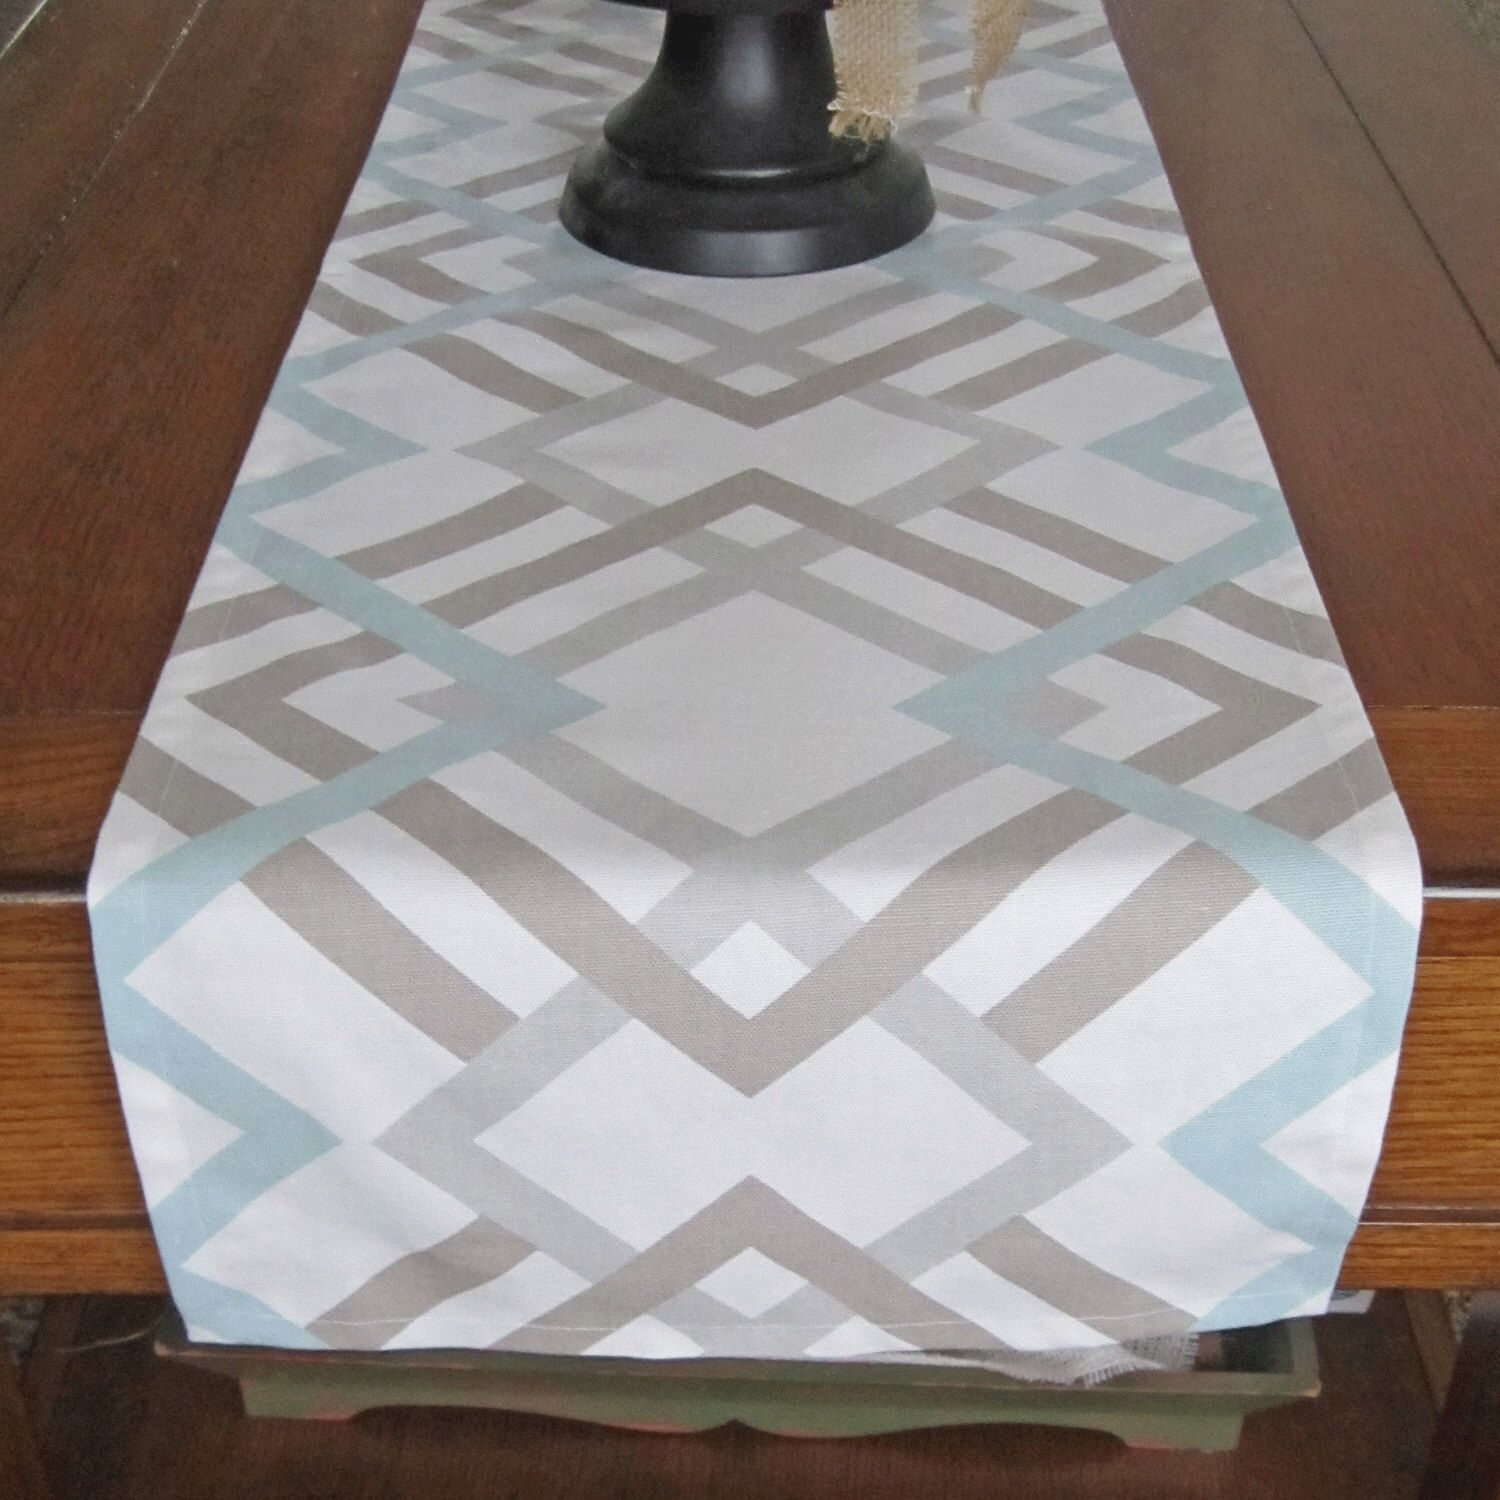 Table Runner Light Blue Taupe Gray Winter Wedding Geometric Home Decor By Newboldhome On Etsy